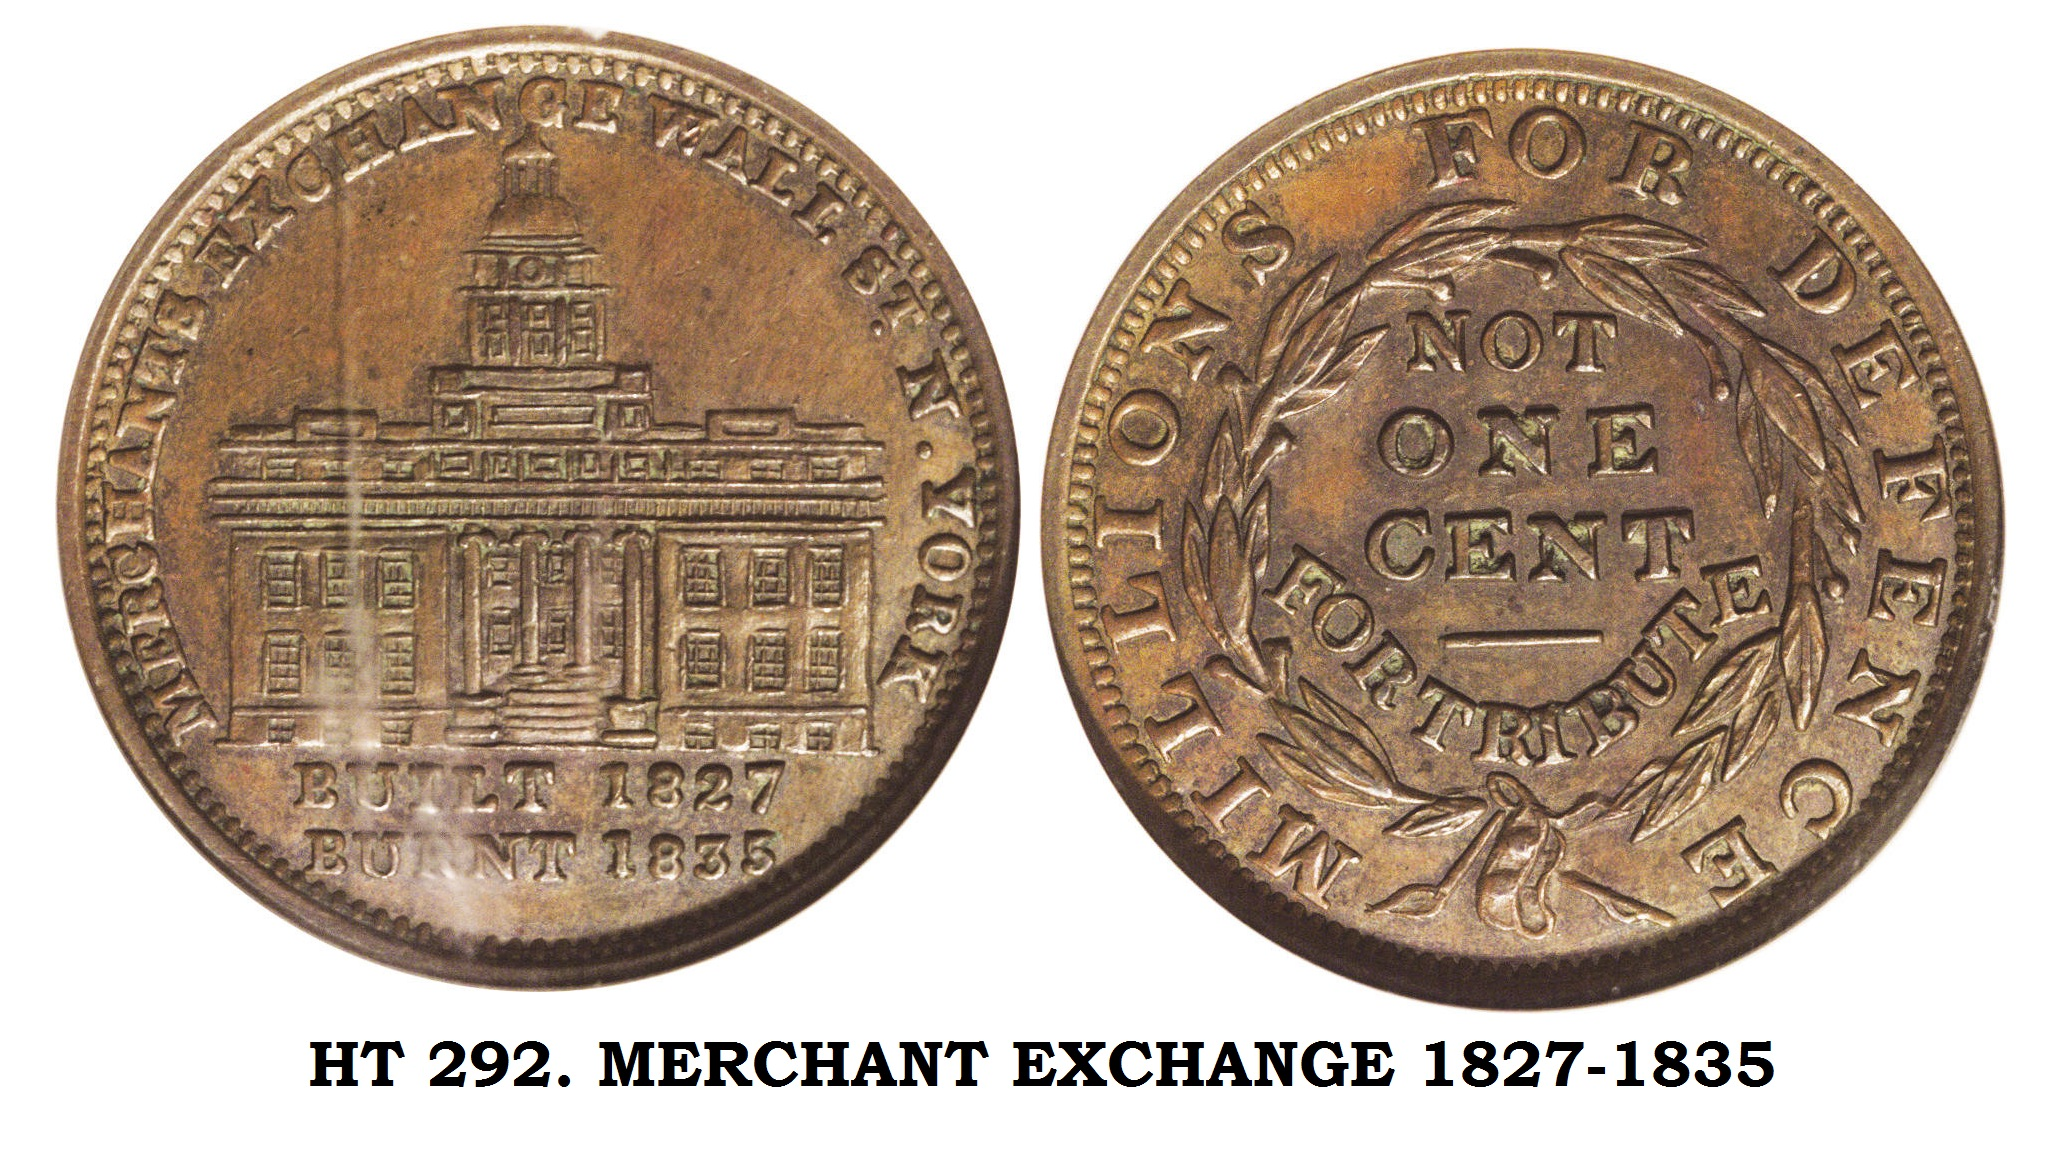 HT-292. MERCHANT EXCHANGE 1827-1835